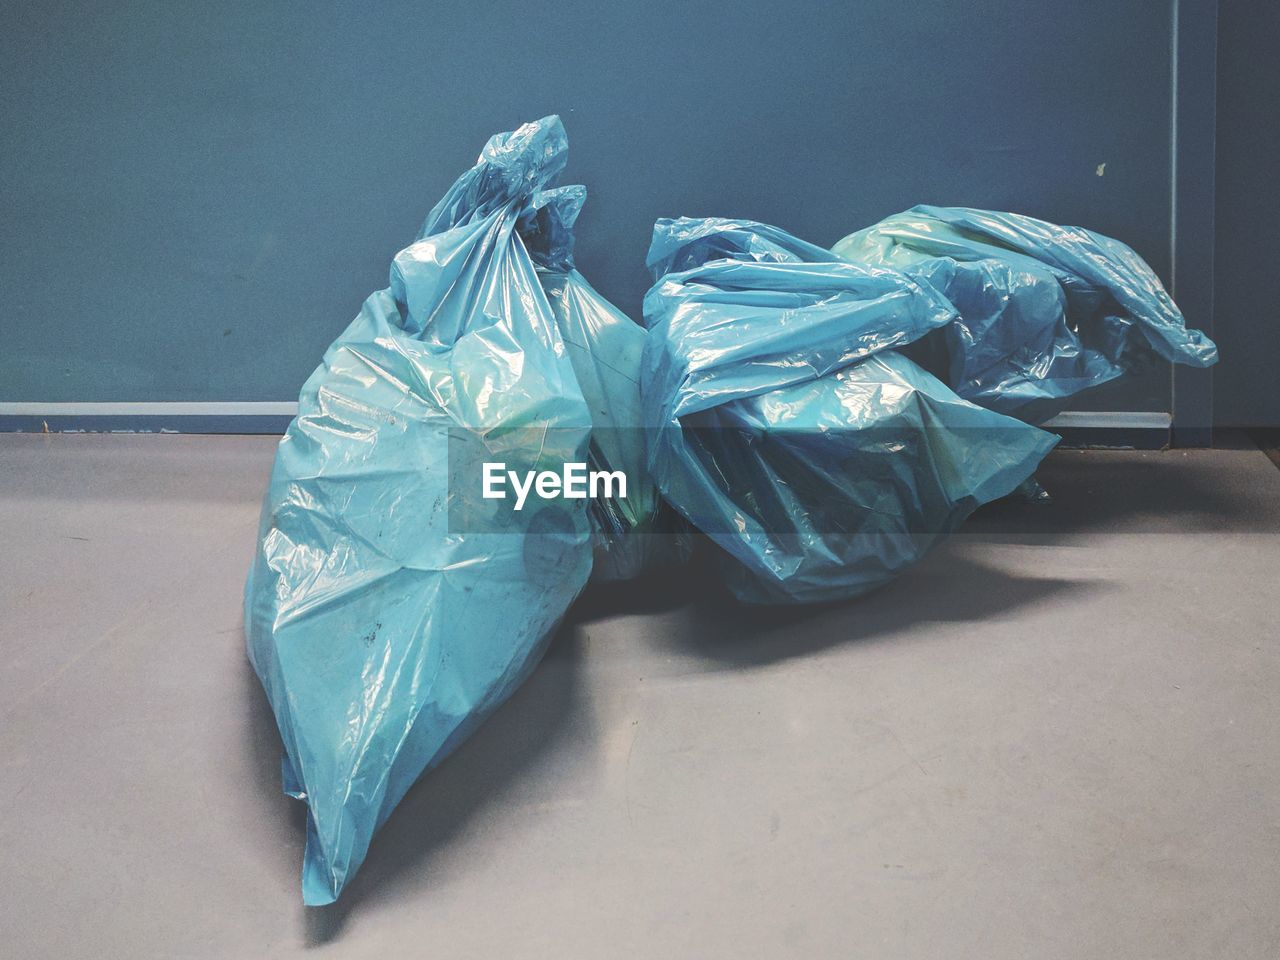 High Angle View Of Blue Garbage Bags On Floor By Wall